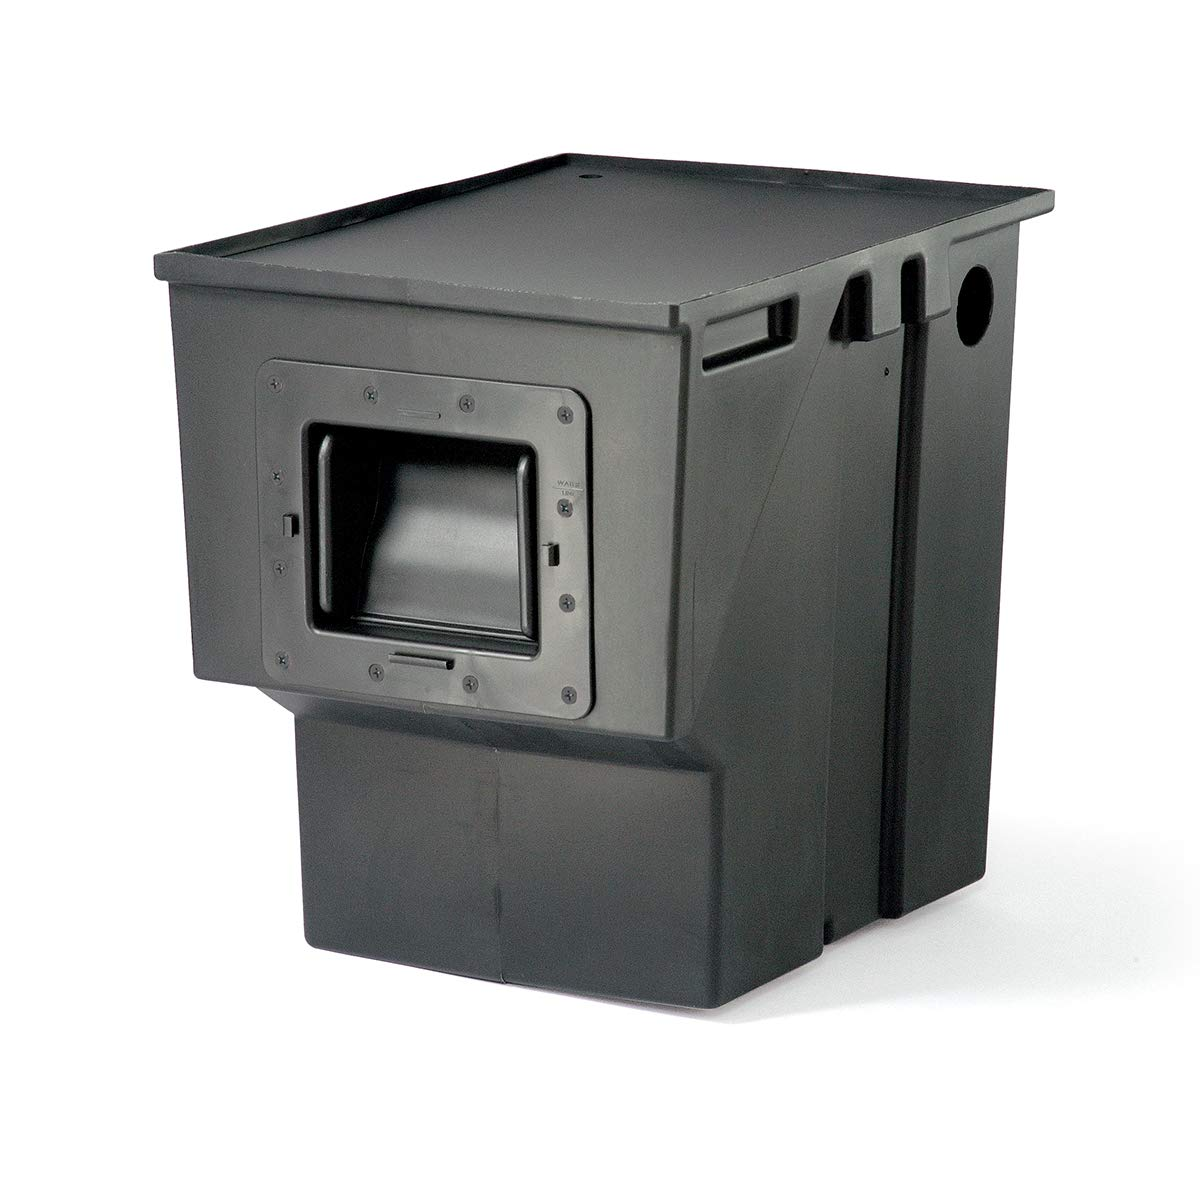 Waterscapes International PS4000 Pond Skimmer, with with 6-Inch Weir Door by Waterscapes International